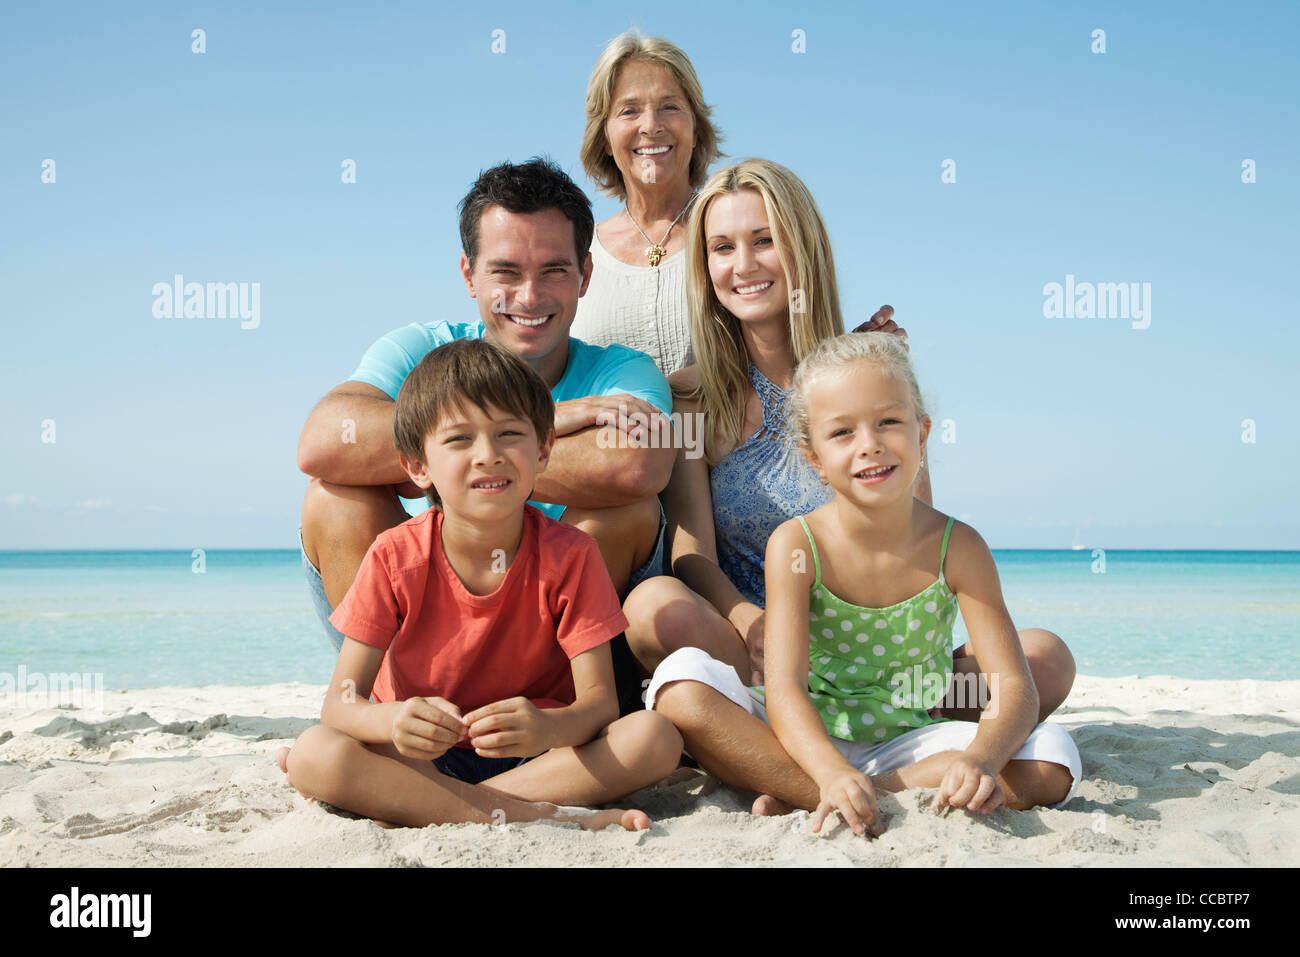 Multi-generation family at the beach, portrait Photo Stock